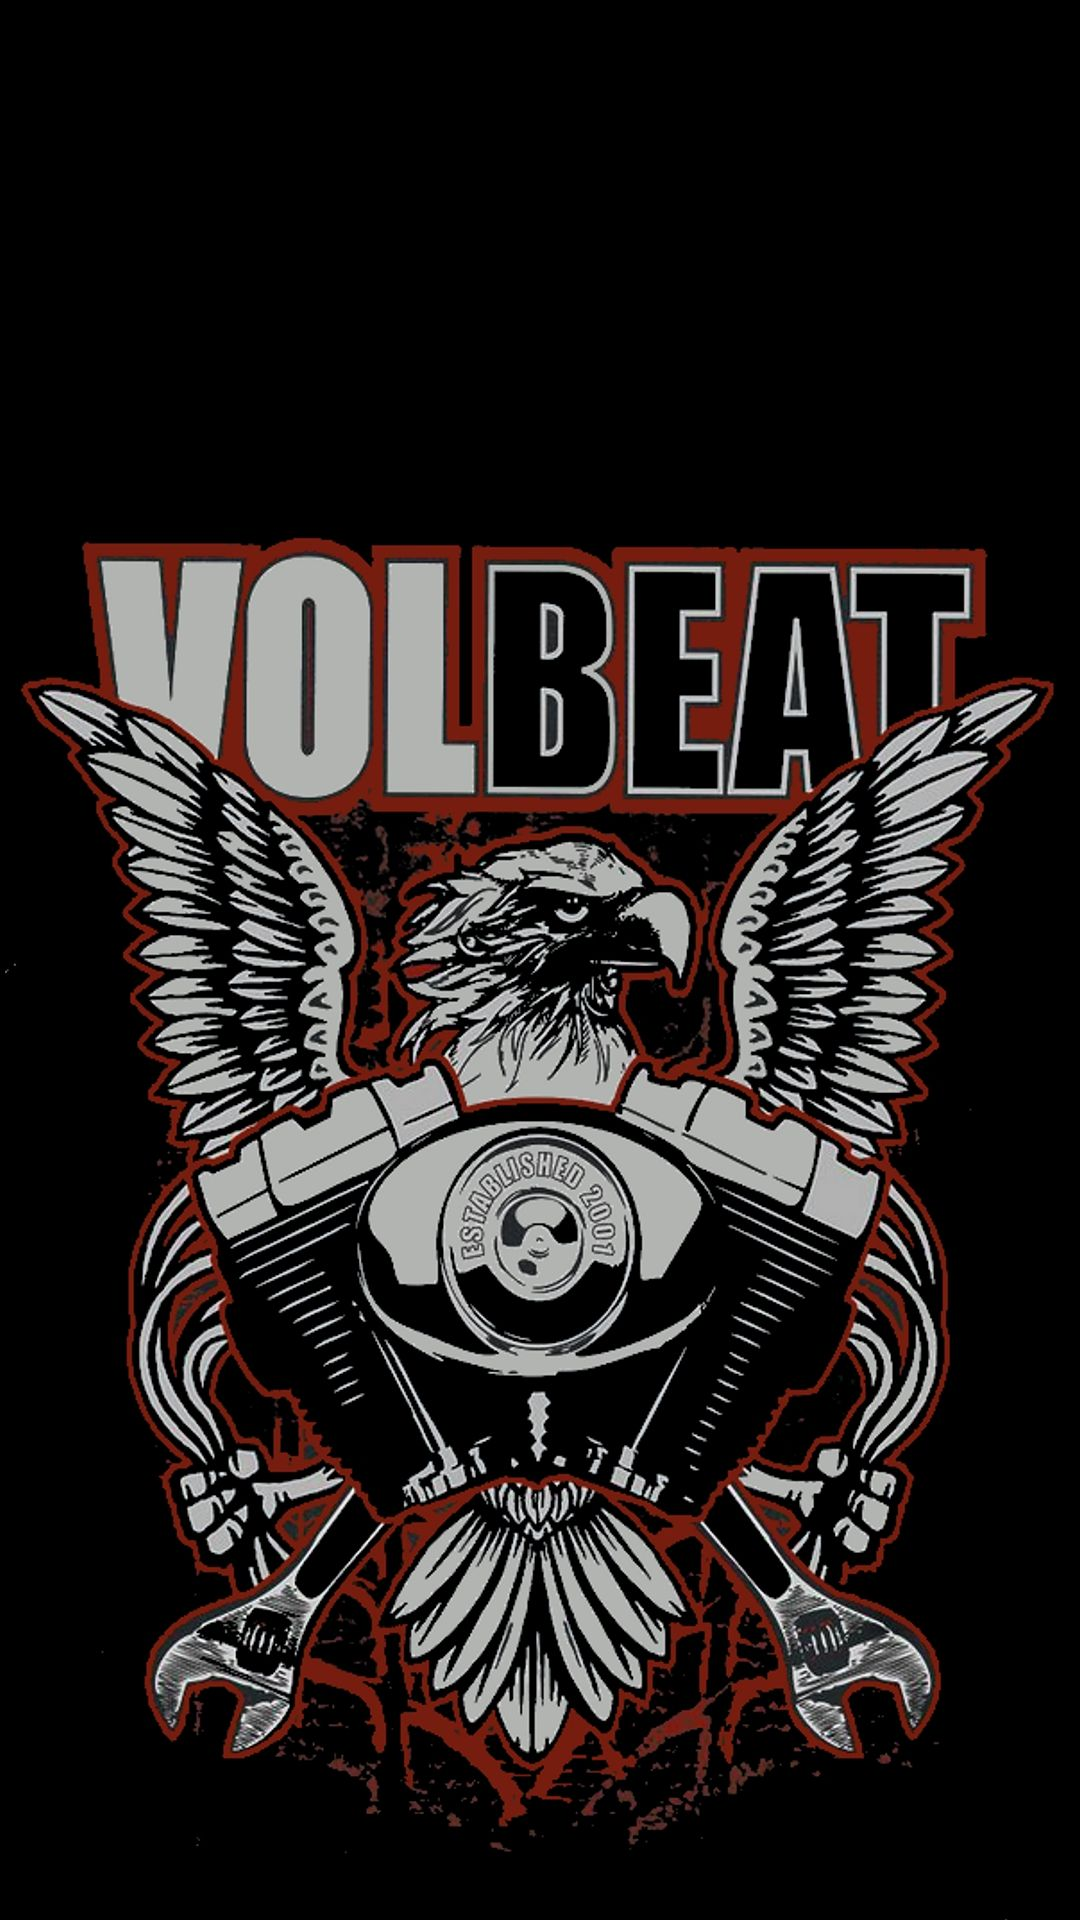 Volbeat - Or maybe this as my tattoo...